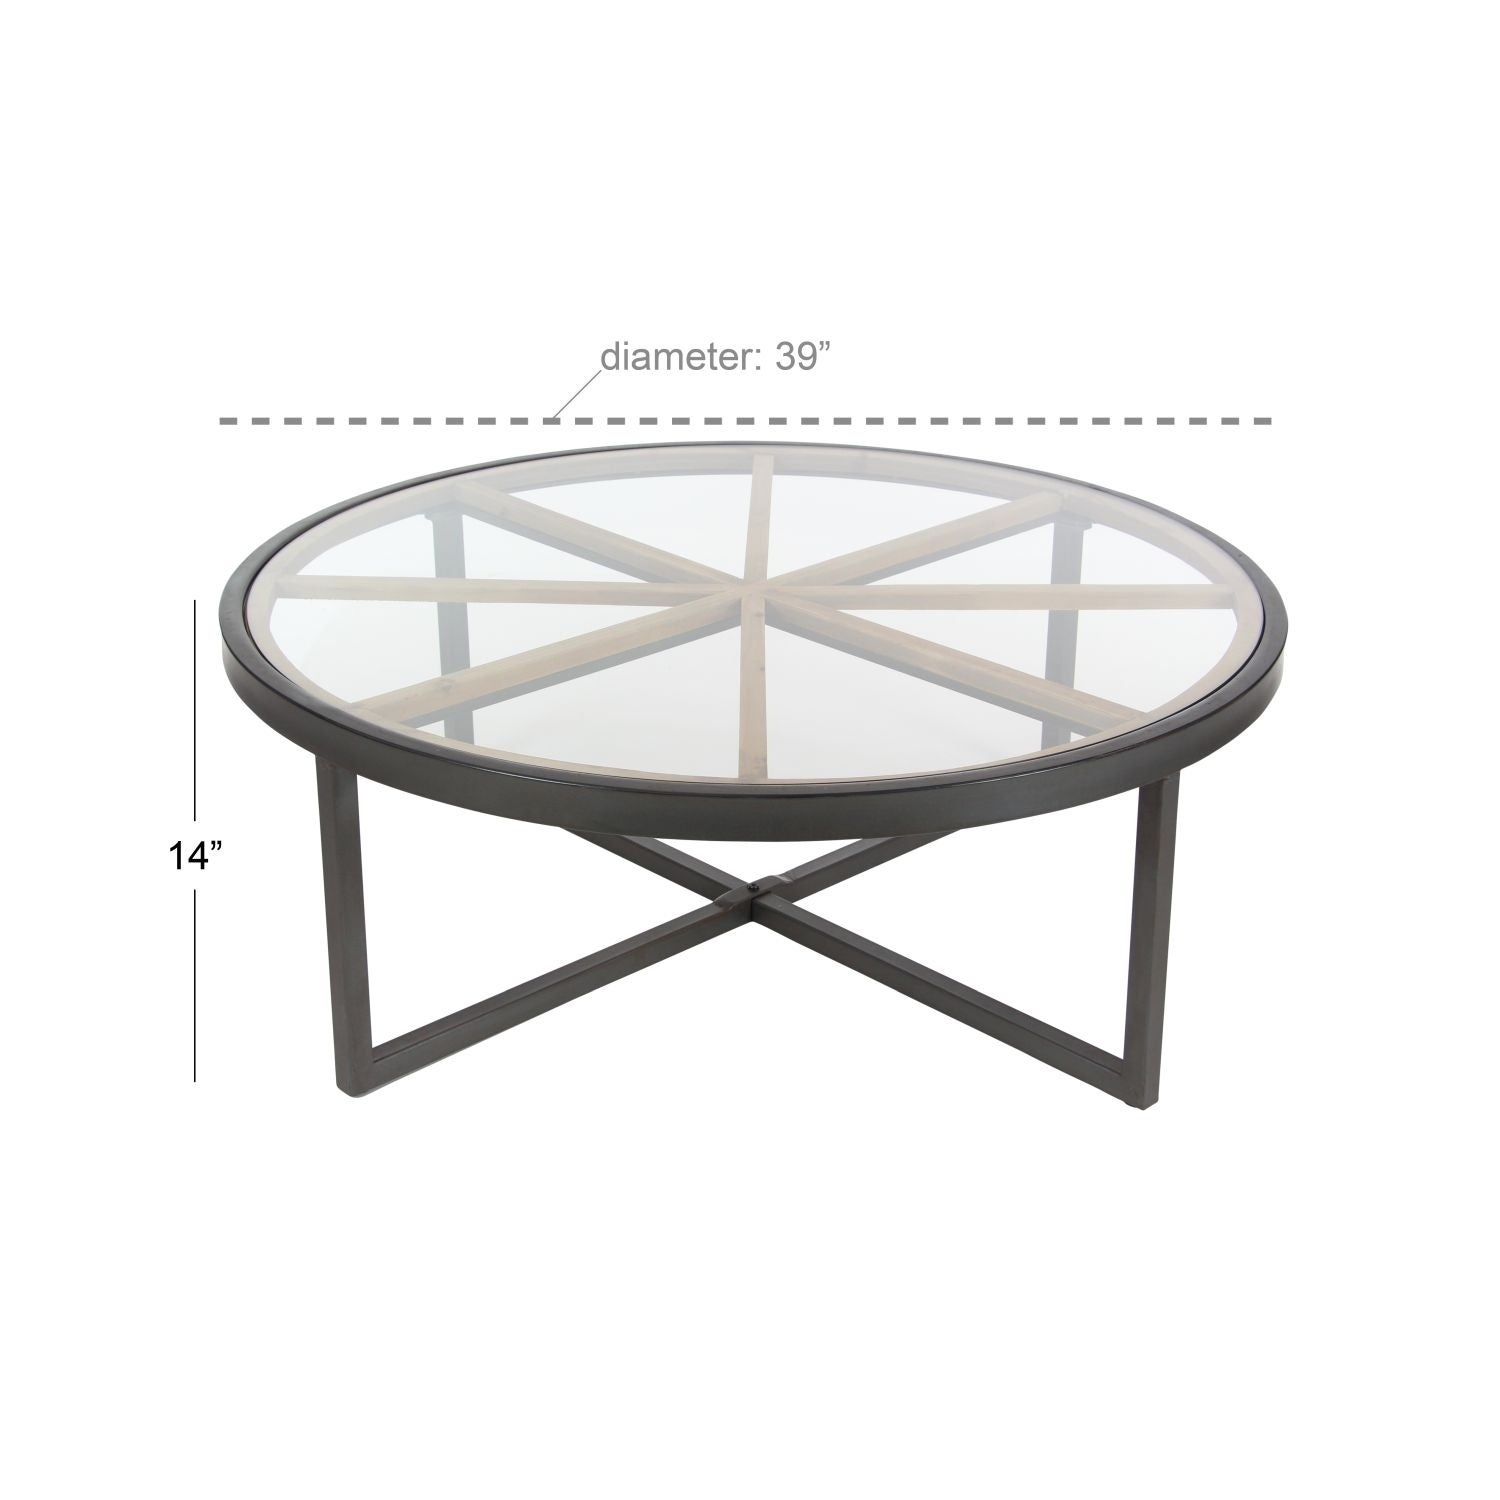 14 Inch High Coffee Table Hipenmoedernl pertaining to size 1500 X 1500